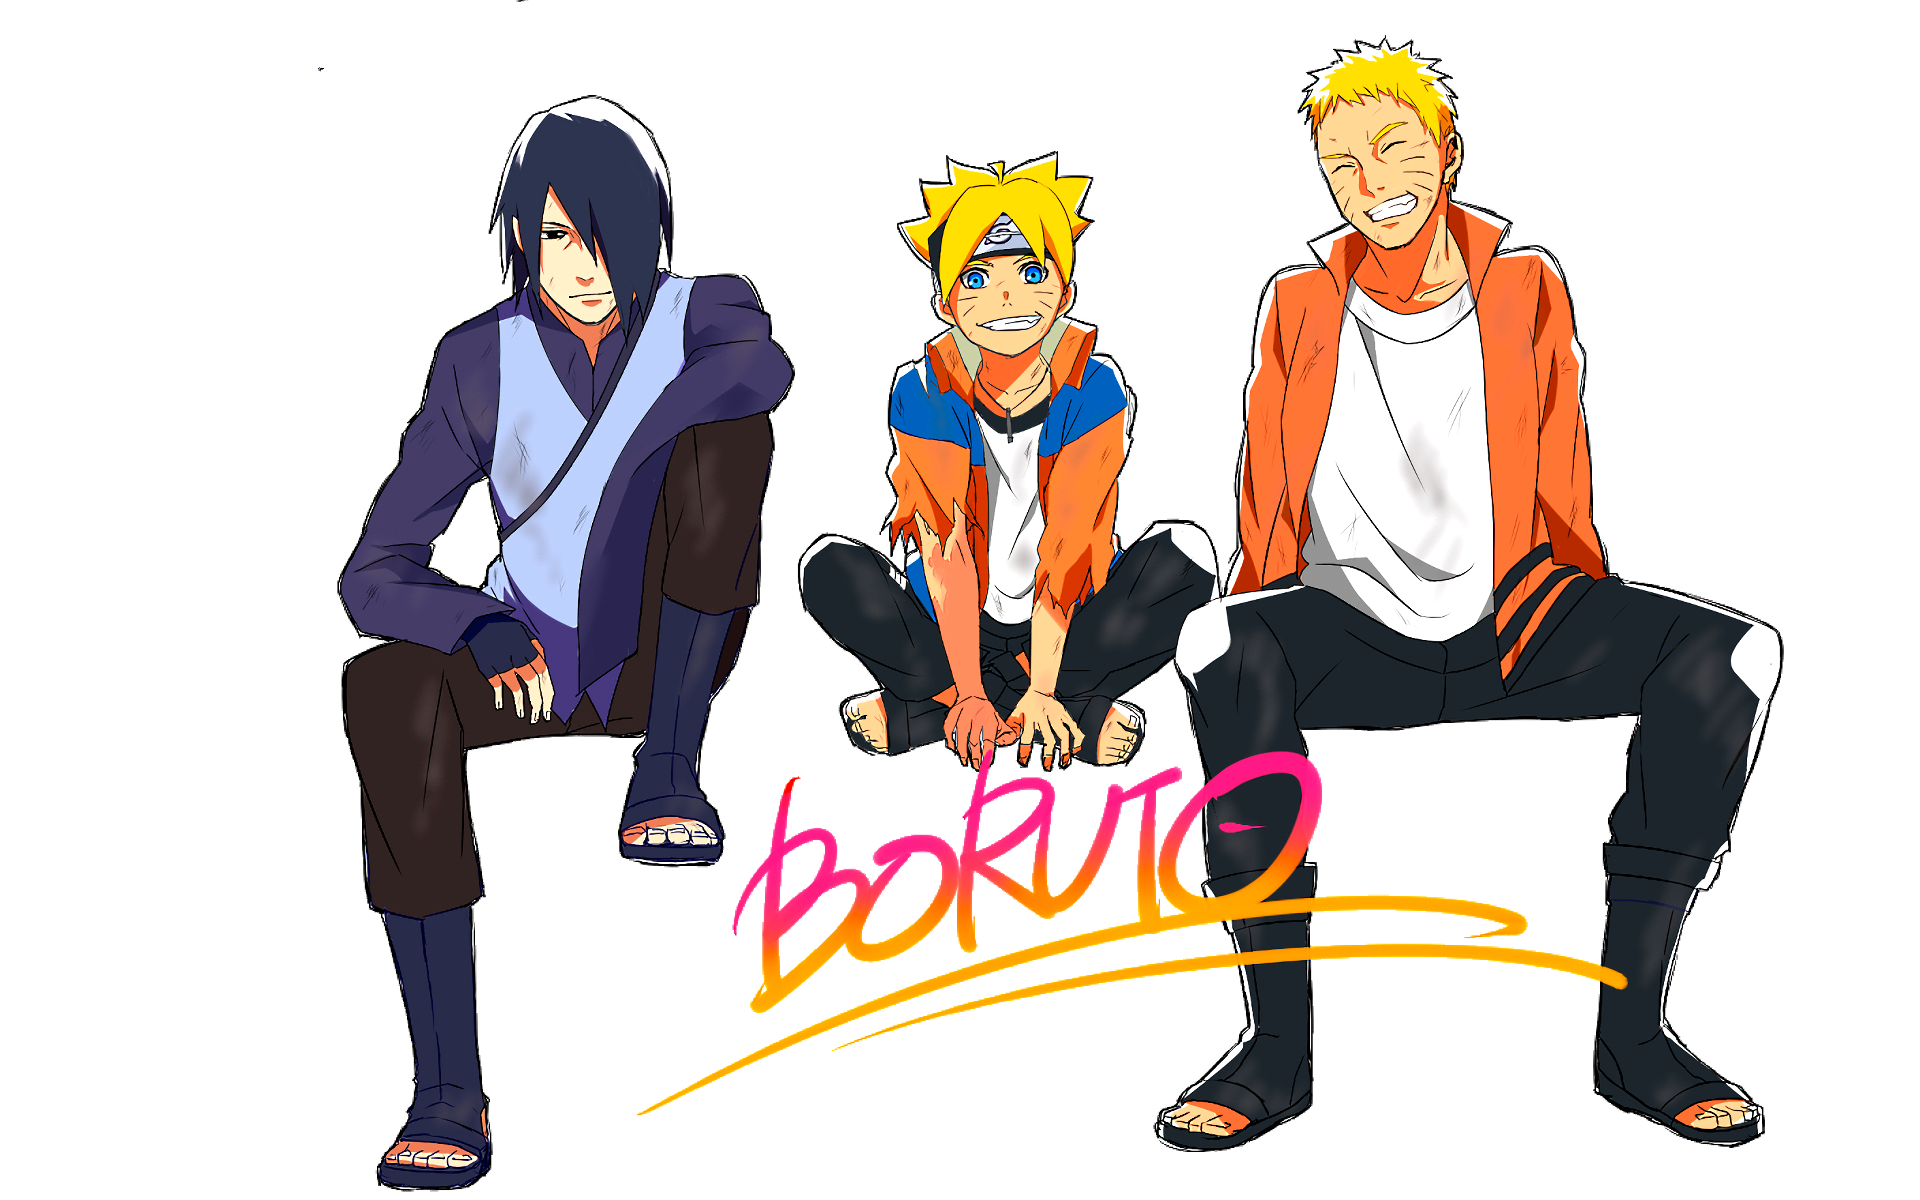 52 boruto naruto the movie hd wallpapers background images